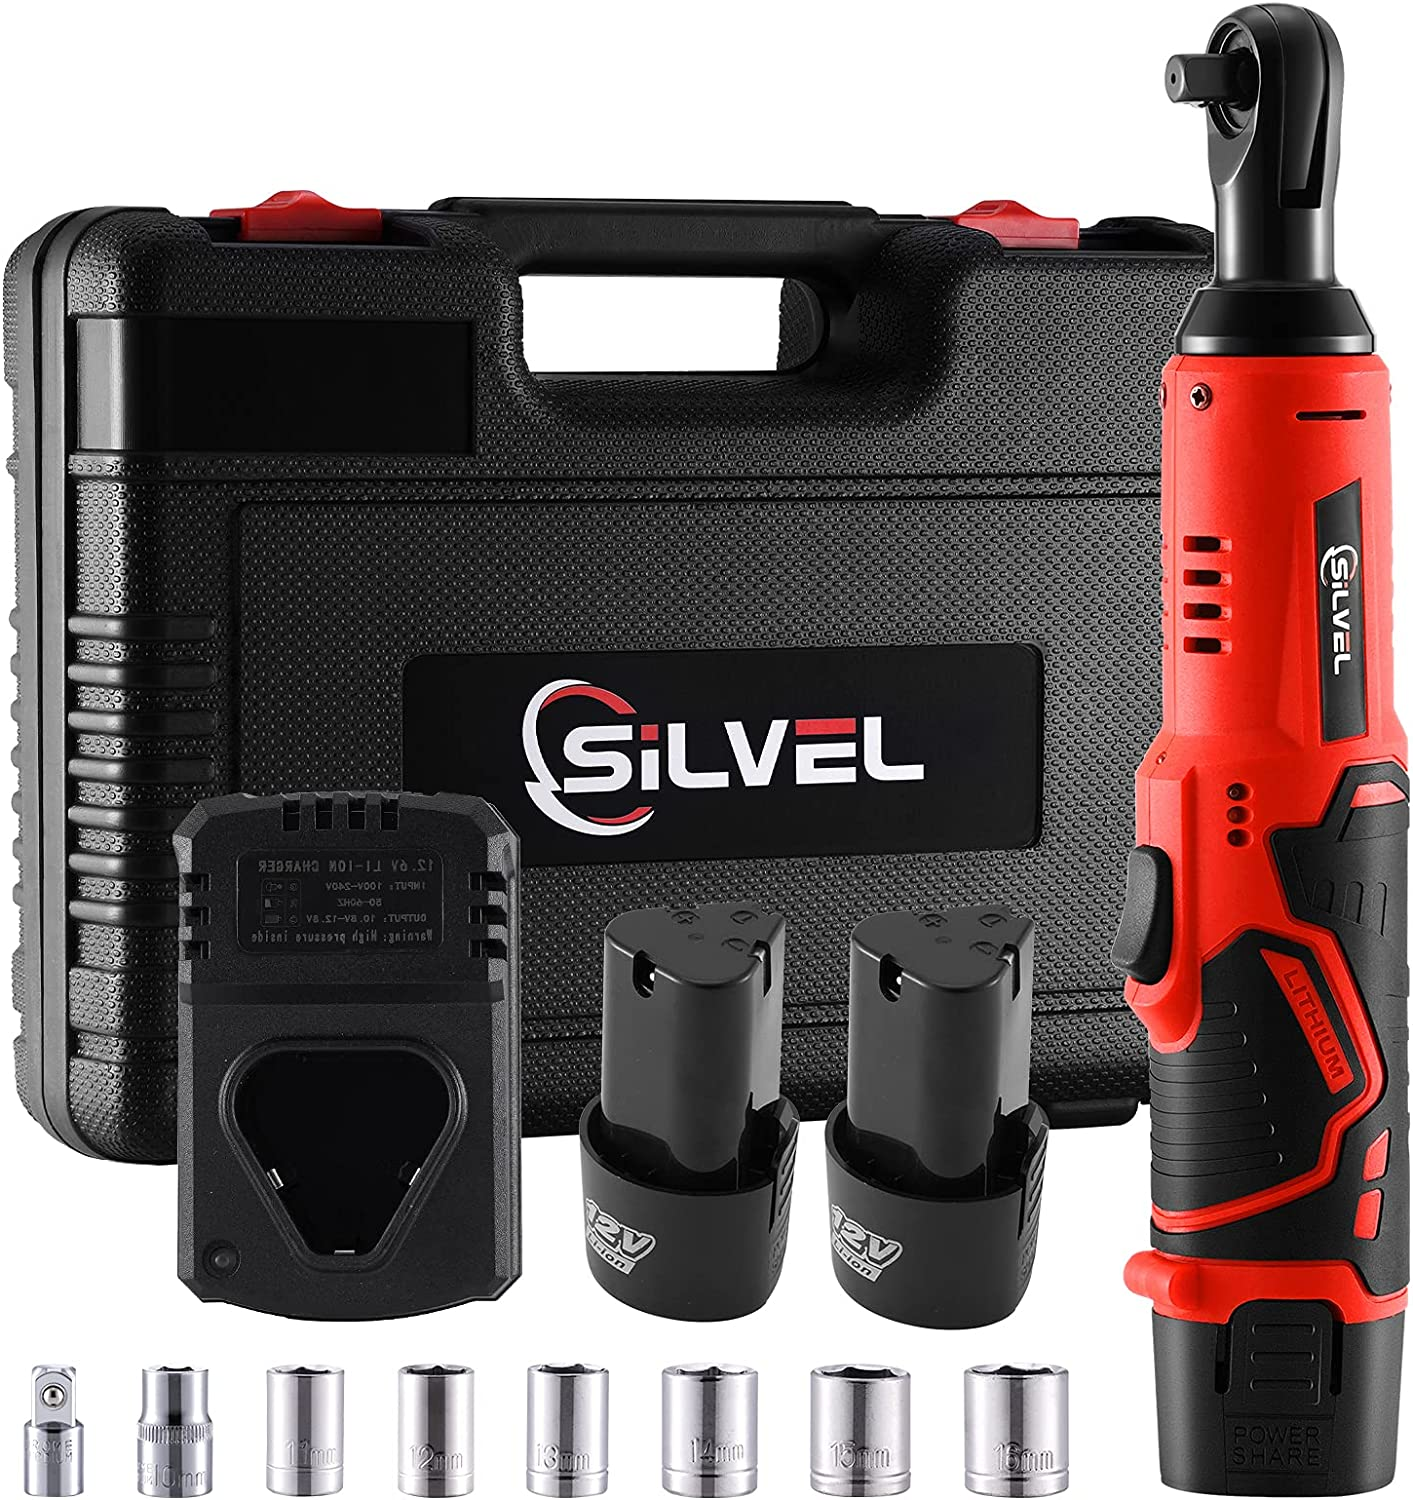 SILVEL Cordless Electric Ratchet Wrench Luxury goods 12V 8 Inch Recommended 3 Ratch Power